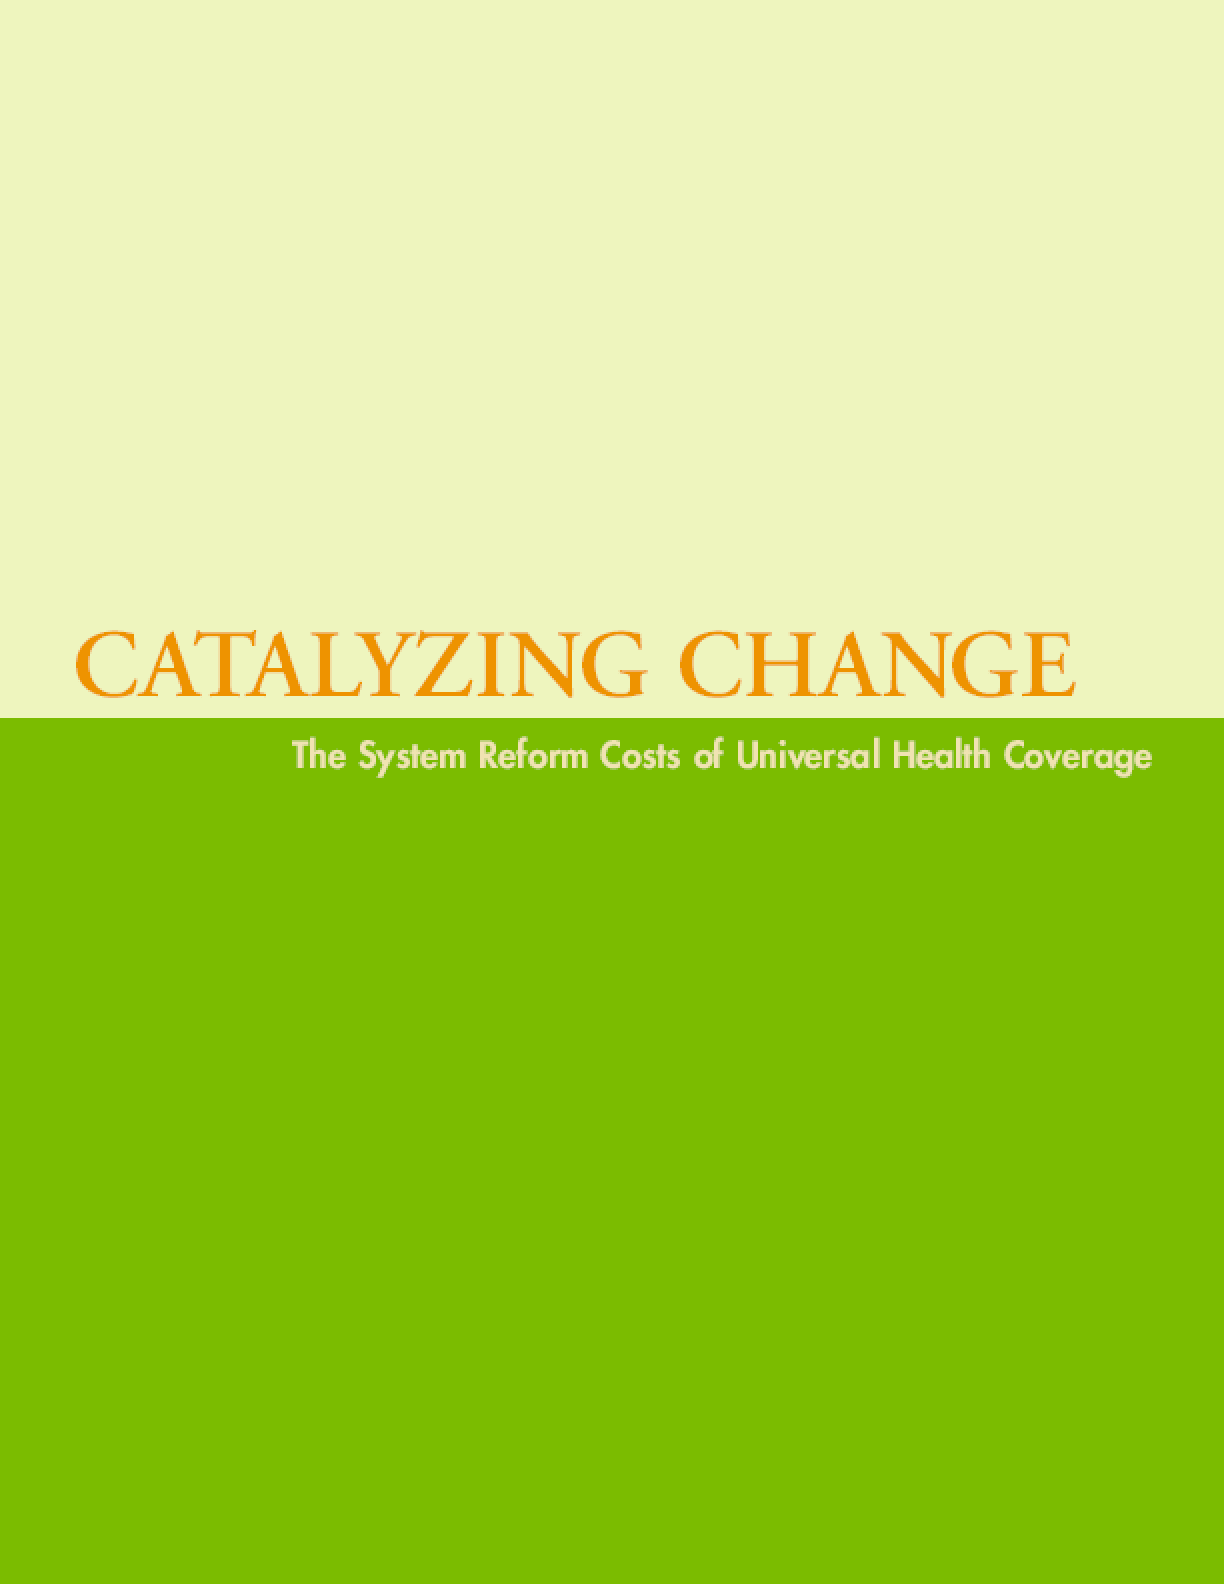 Catalyzing Change: The System Reform Costs of Universal Health Coverage